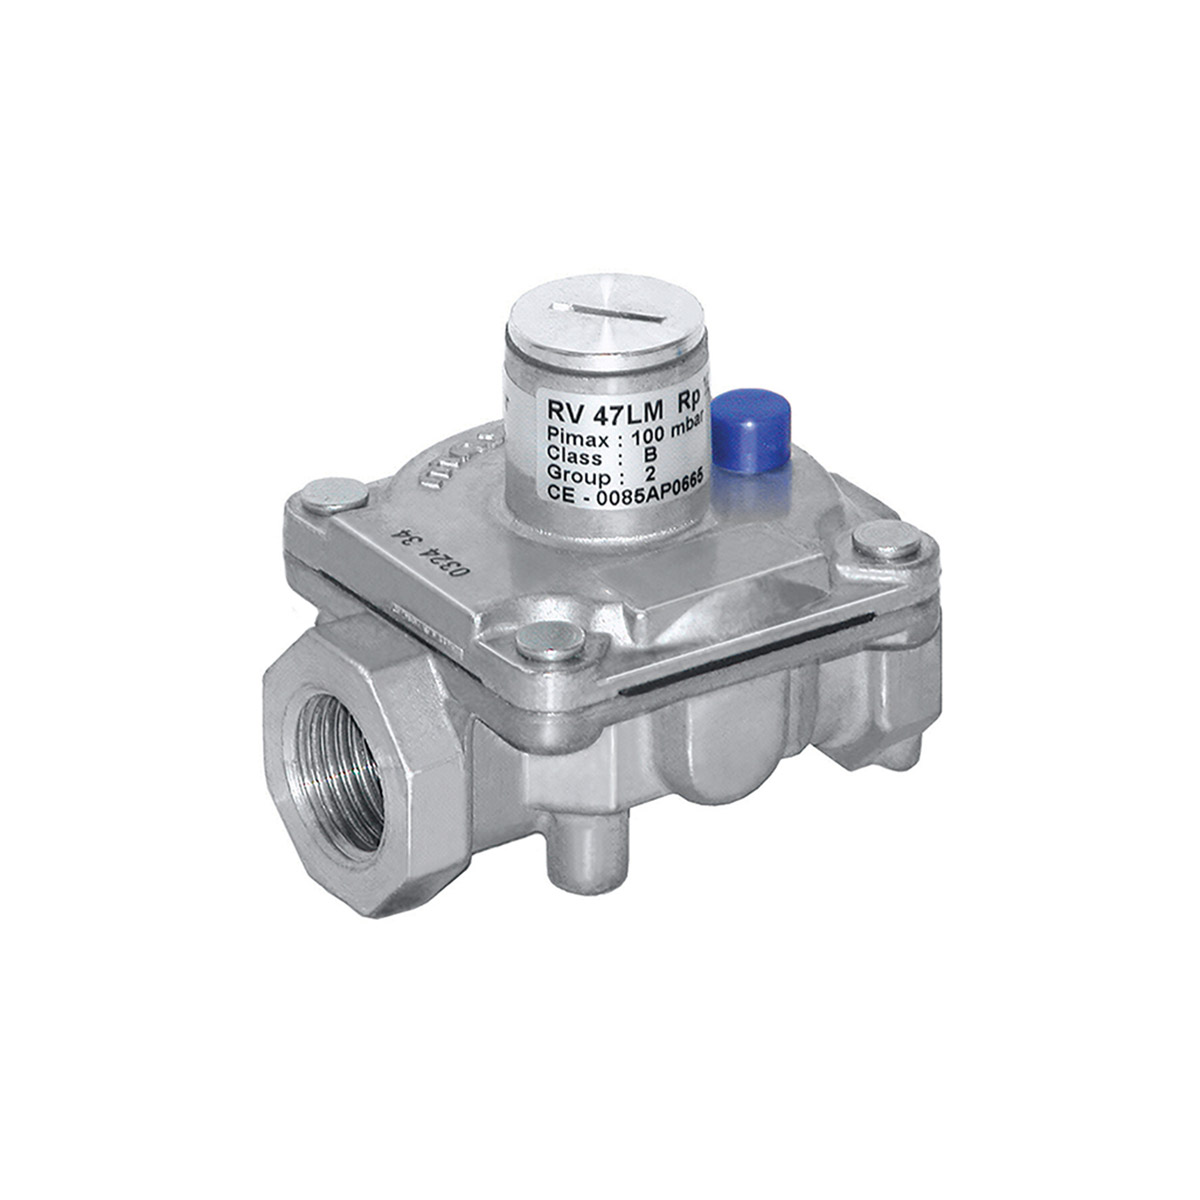 CaterConnex (Gas) C-GR075 3/4 Inch Gas Regulator/Governor